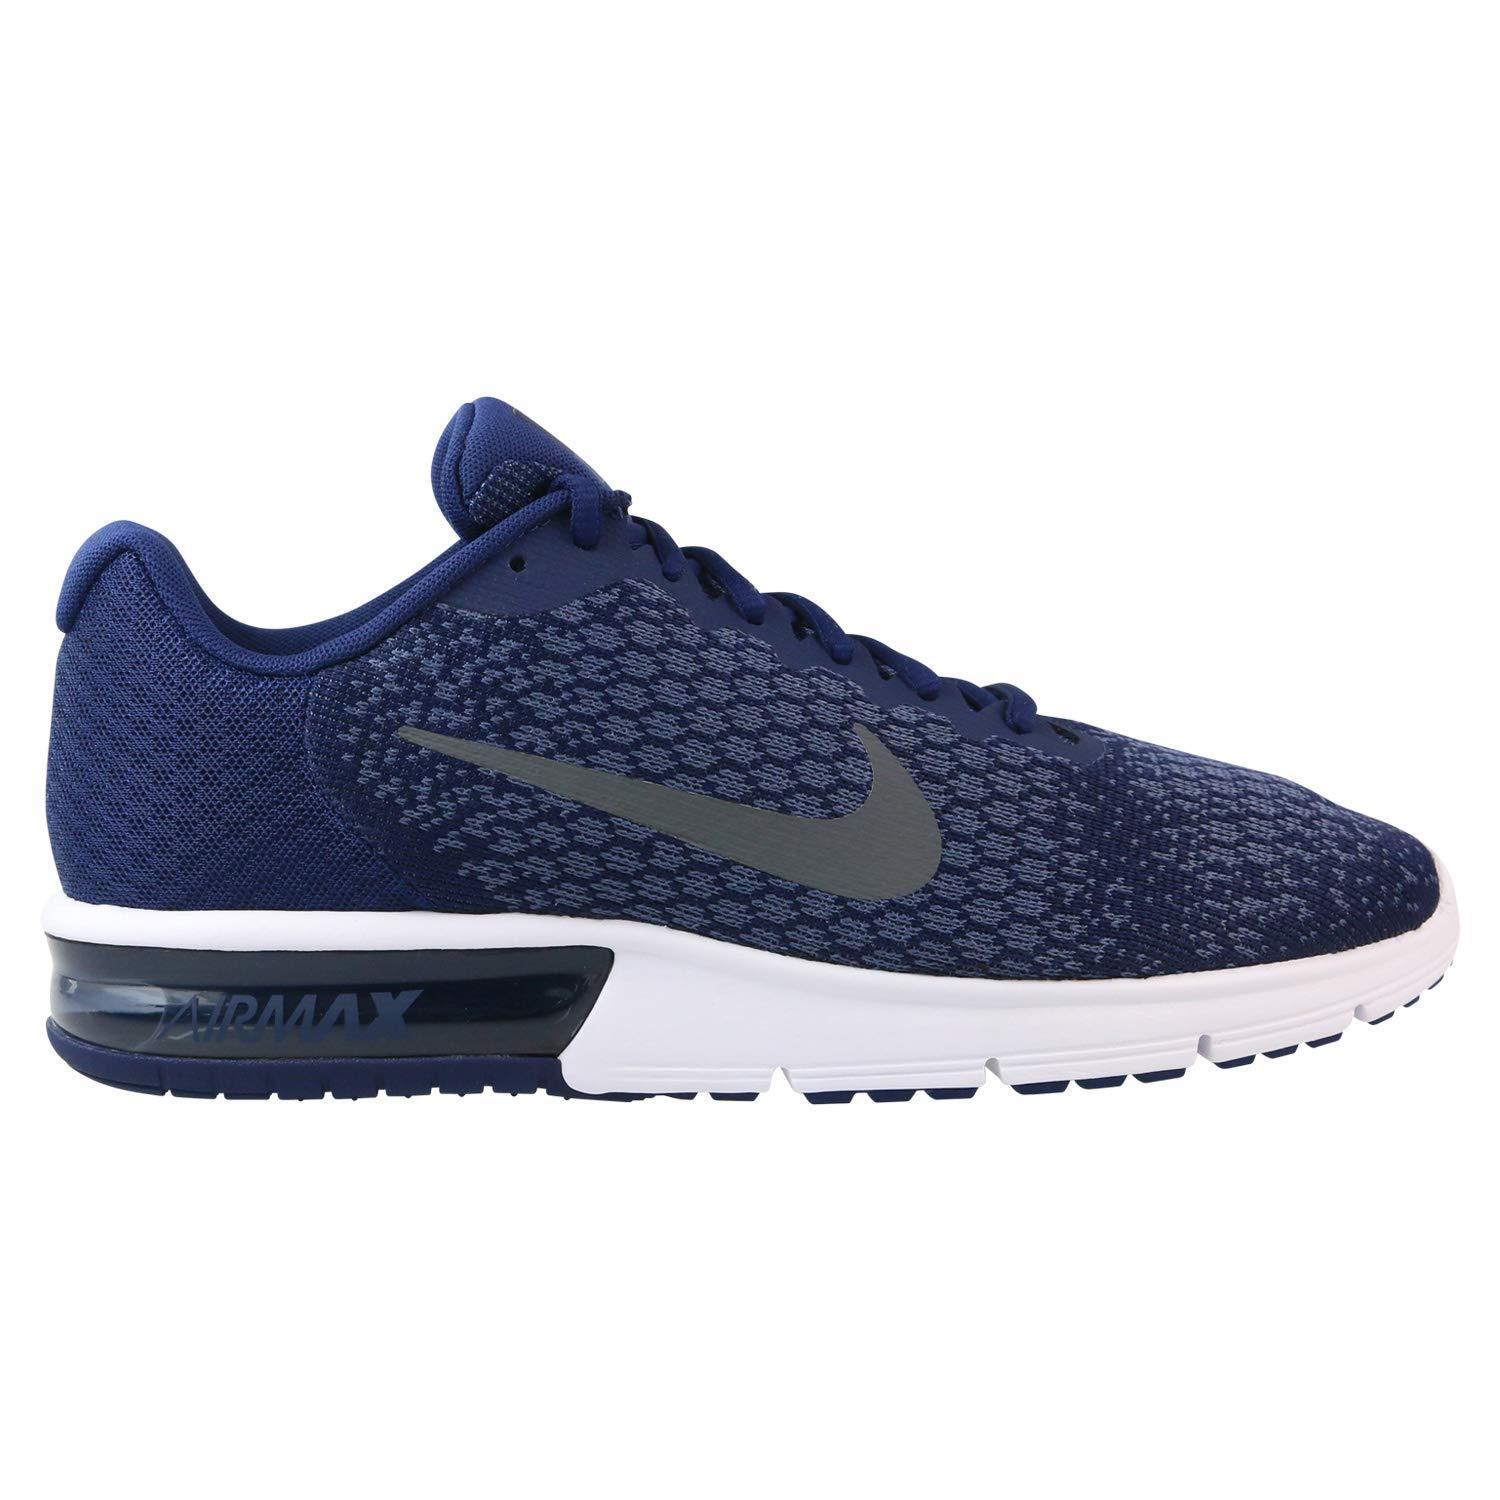 d165bb2969a9f Nike Men s AIR MAX Sequent 2 Running Shoes  Buy Online at Low Prices in  India - Amazon.in